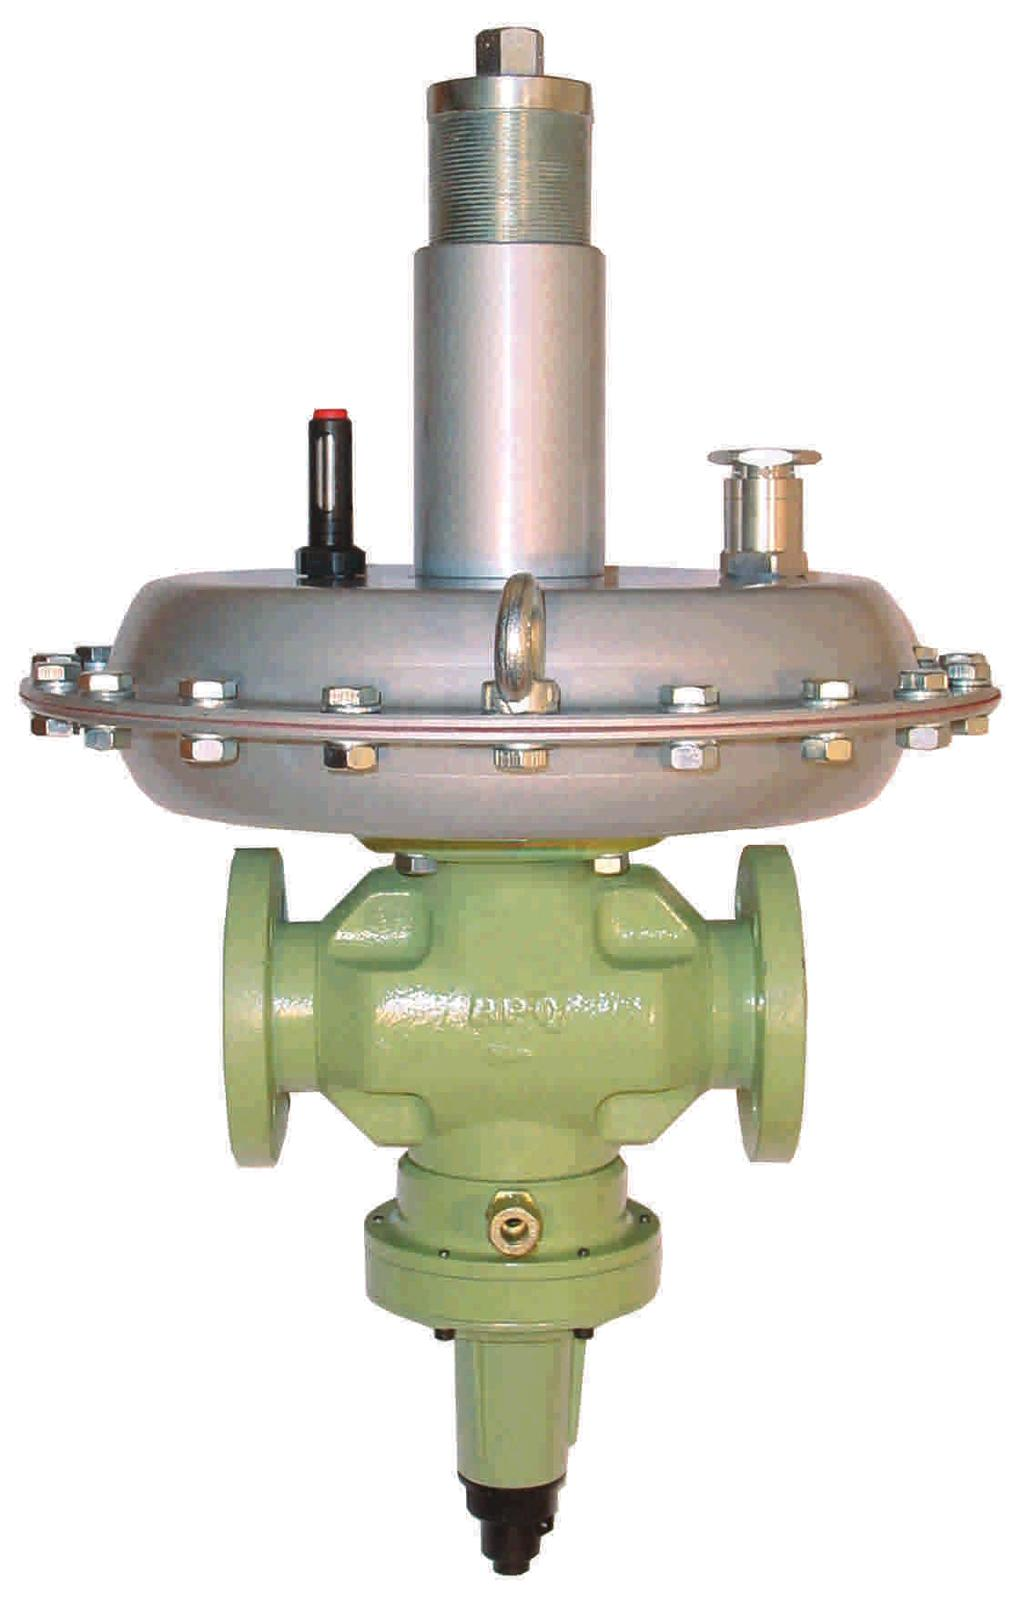 PRESSURE SLAM-SHUT VALVE HIGH PRECISION REGULATION SIMPLE MAINTENANCE; NO NEED TO REMOVE FROM GAS LINE